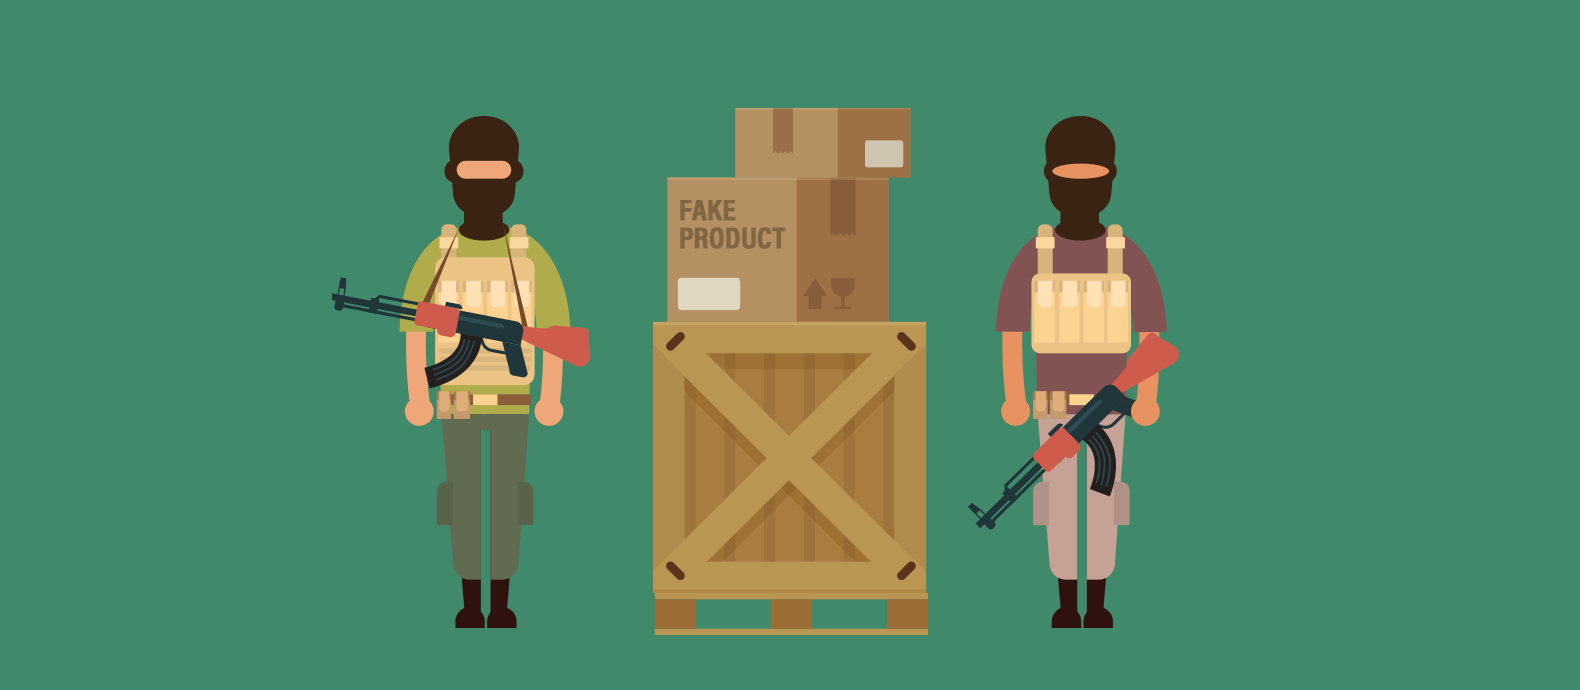 Terrorism: Salient Links to Counterfeiting and Piracy